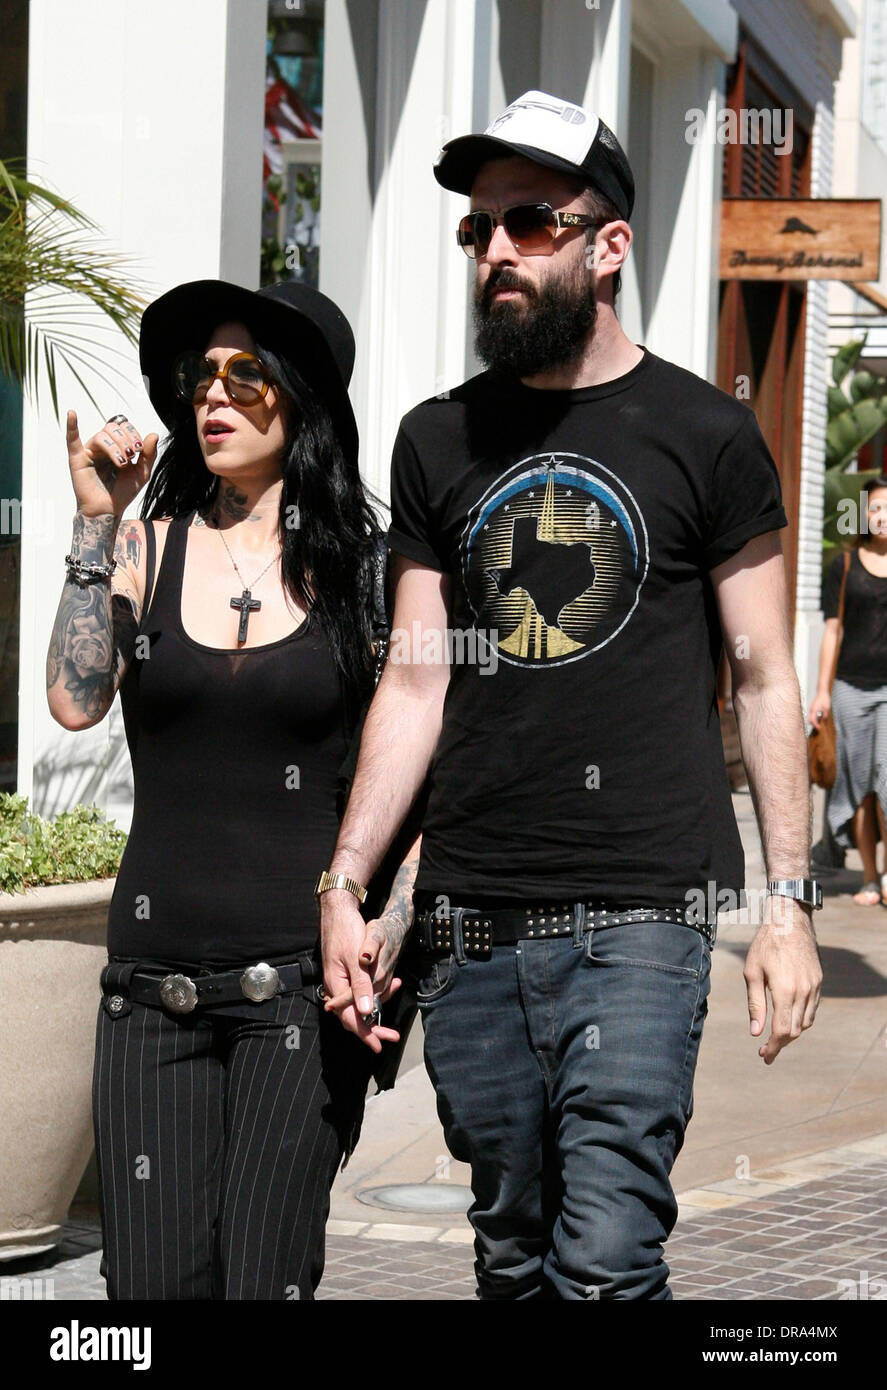 Are kat von d and scroobius pip dating